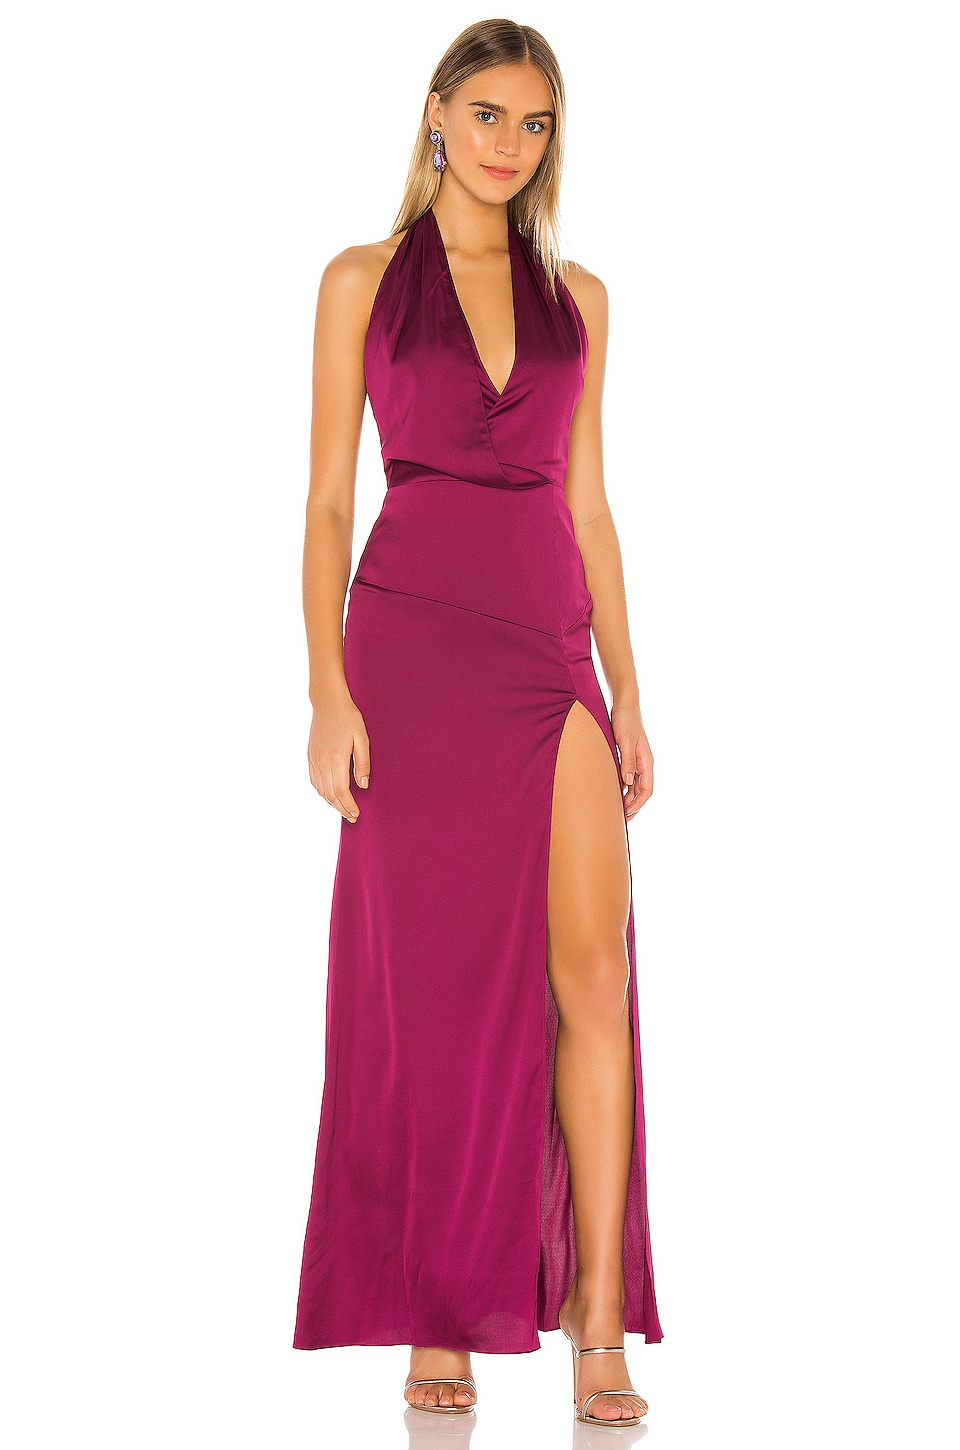 Lovers + Friends Andrea Gown in Violet Shiraz